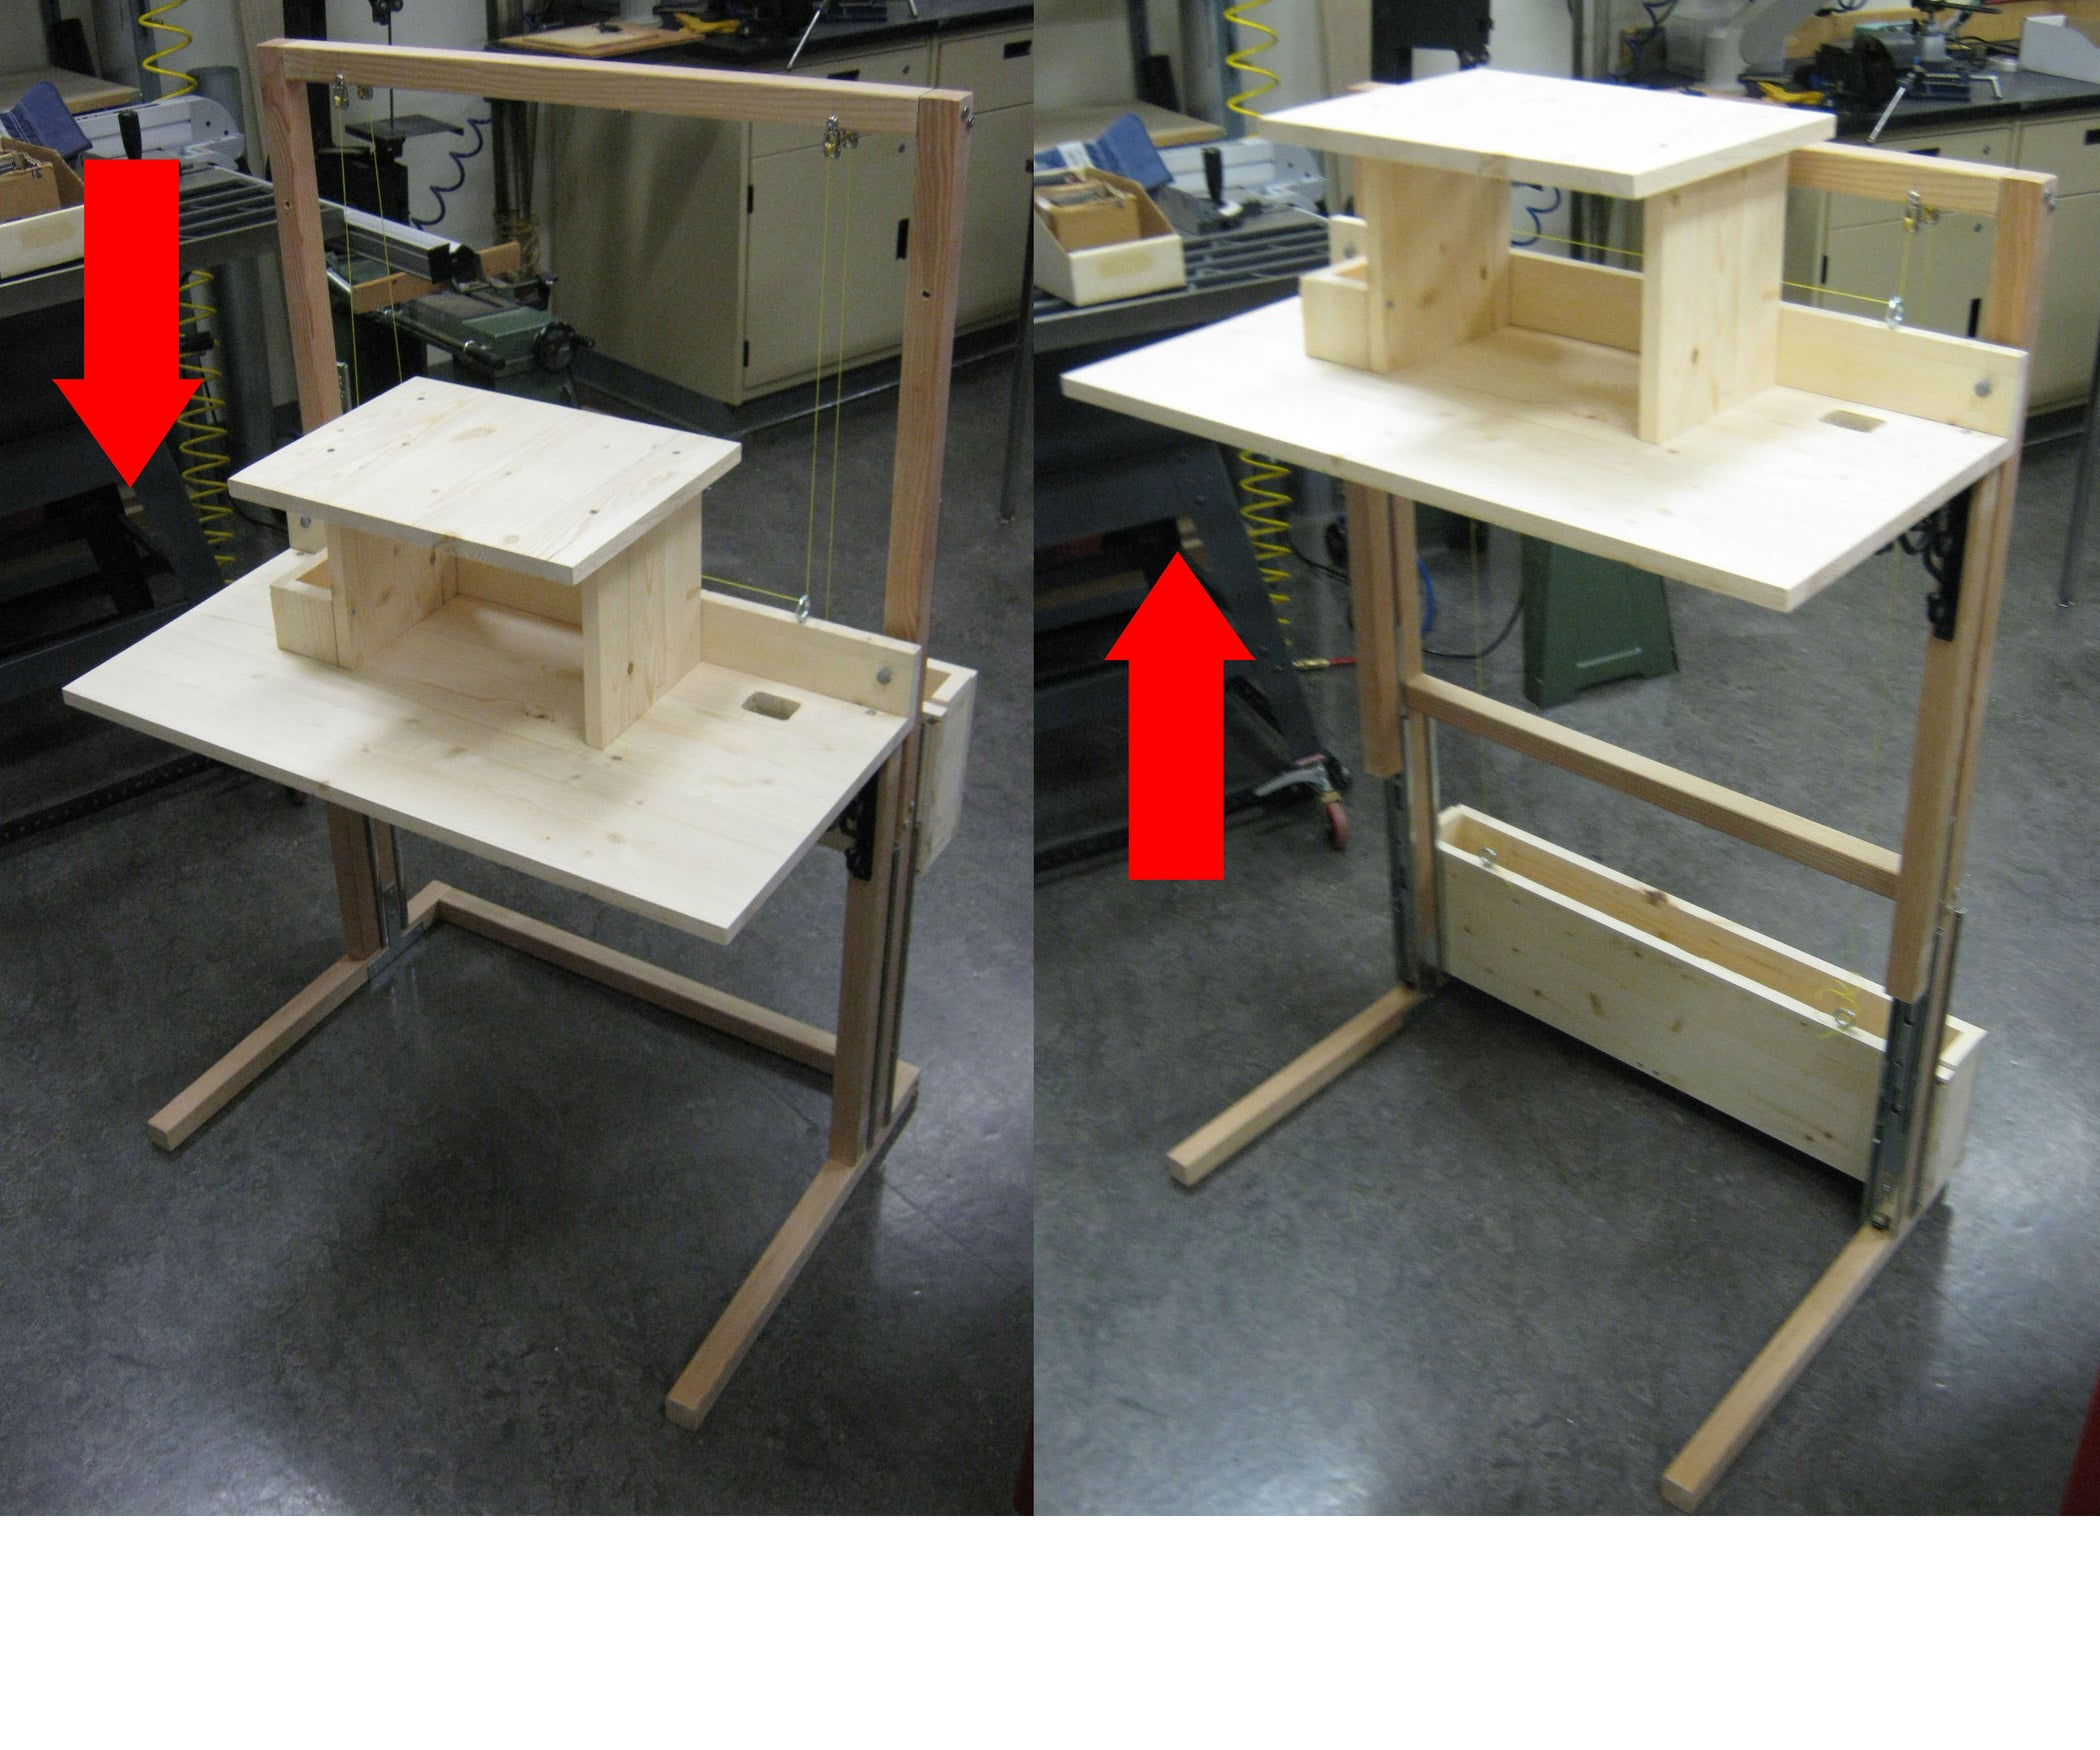 Convertible Standing/Sitting Desk for $200